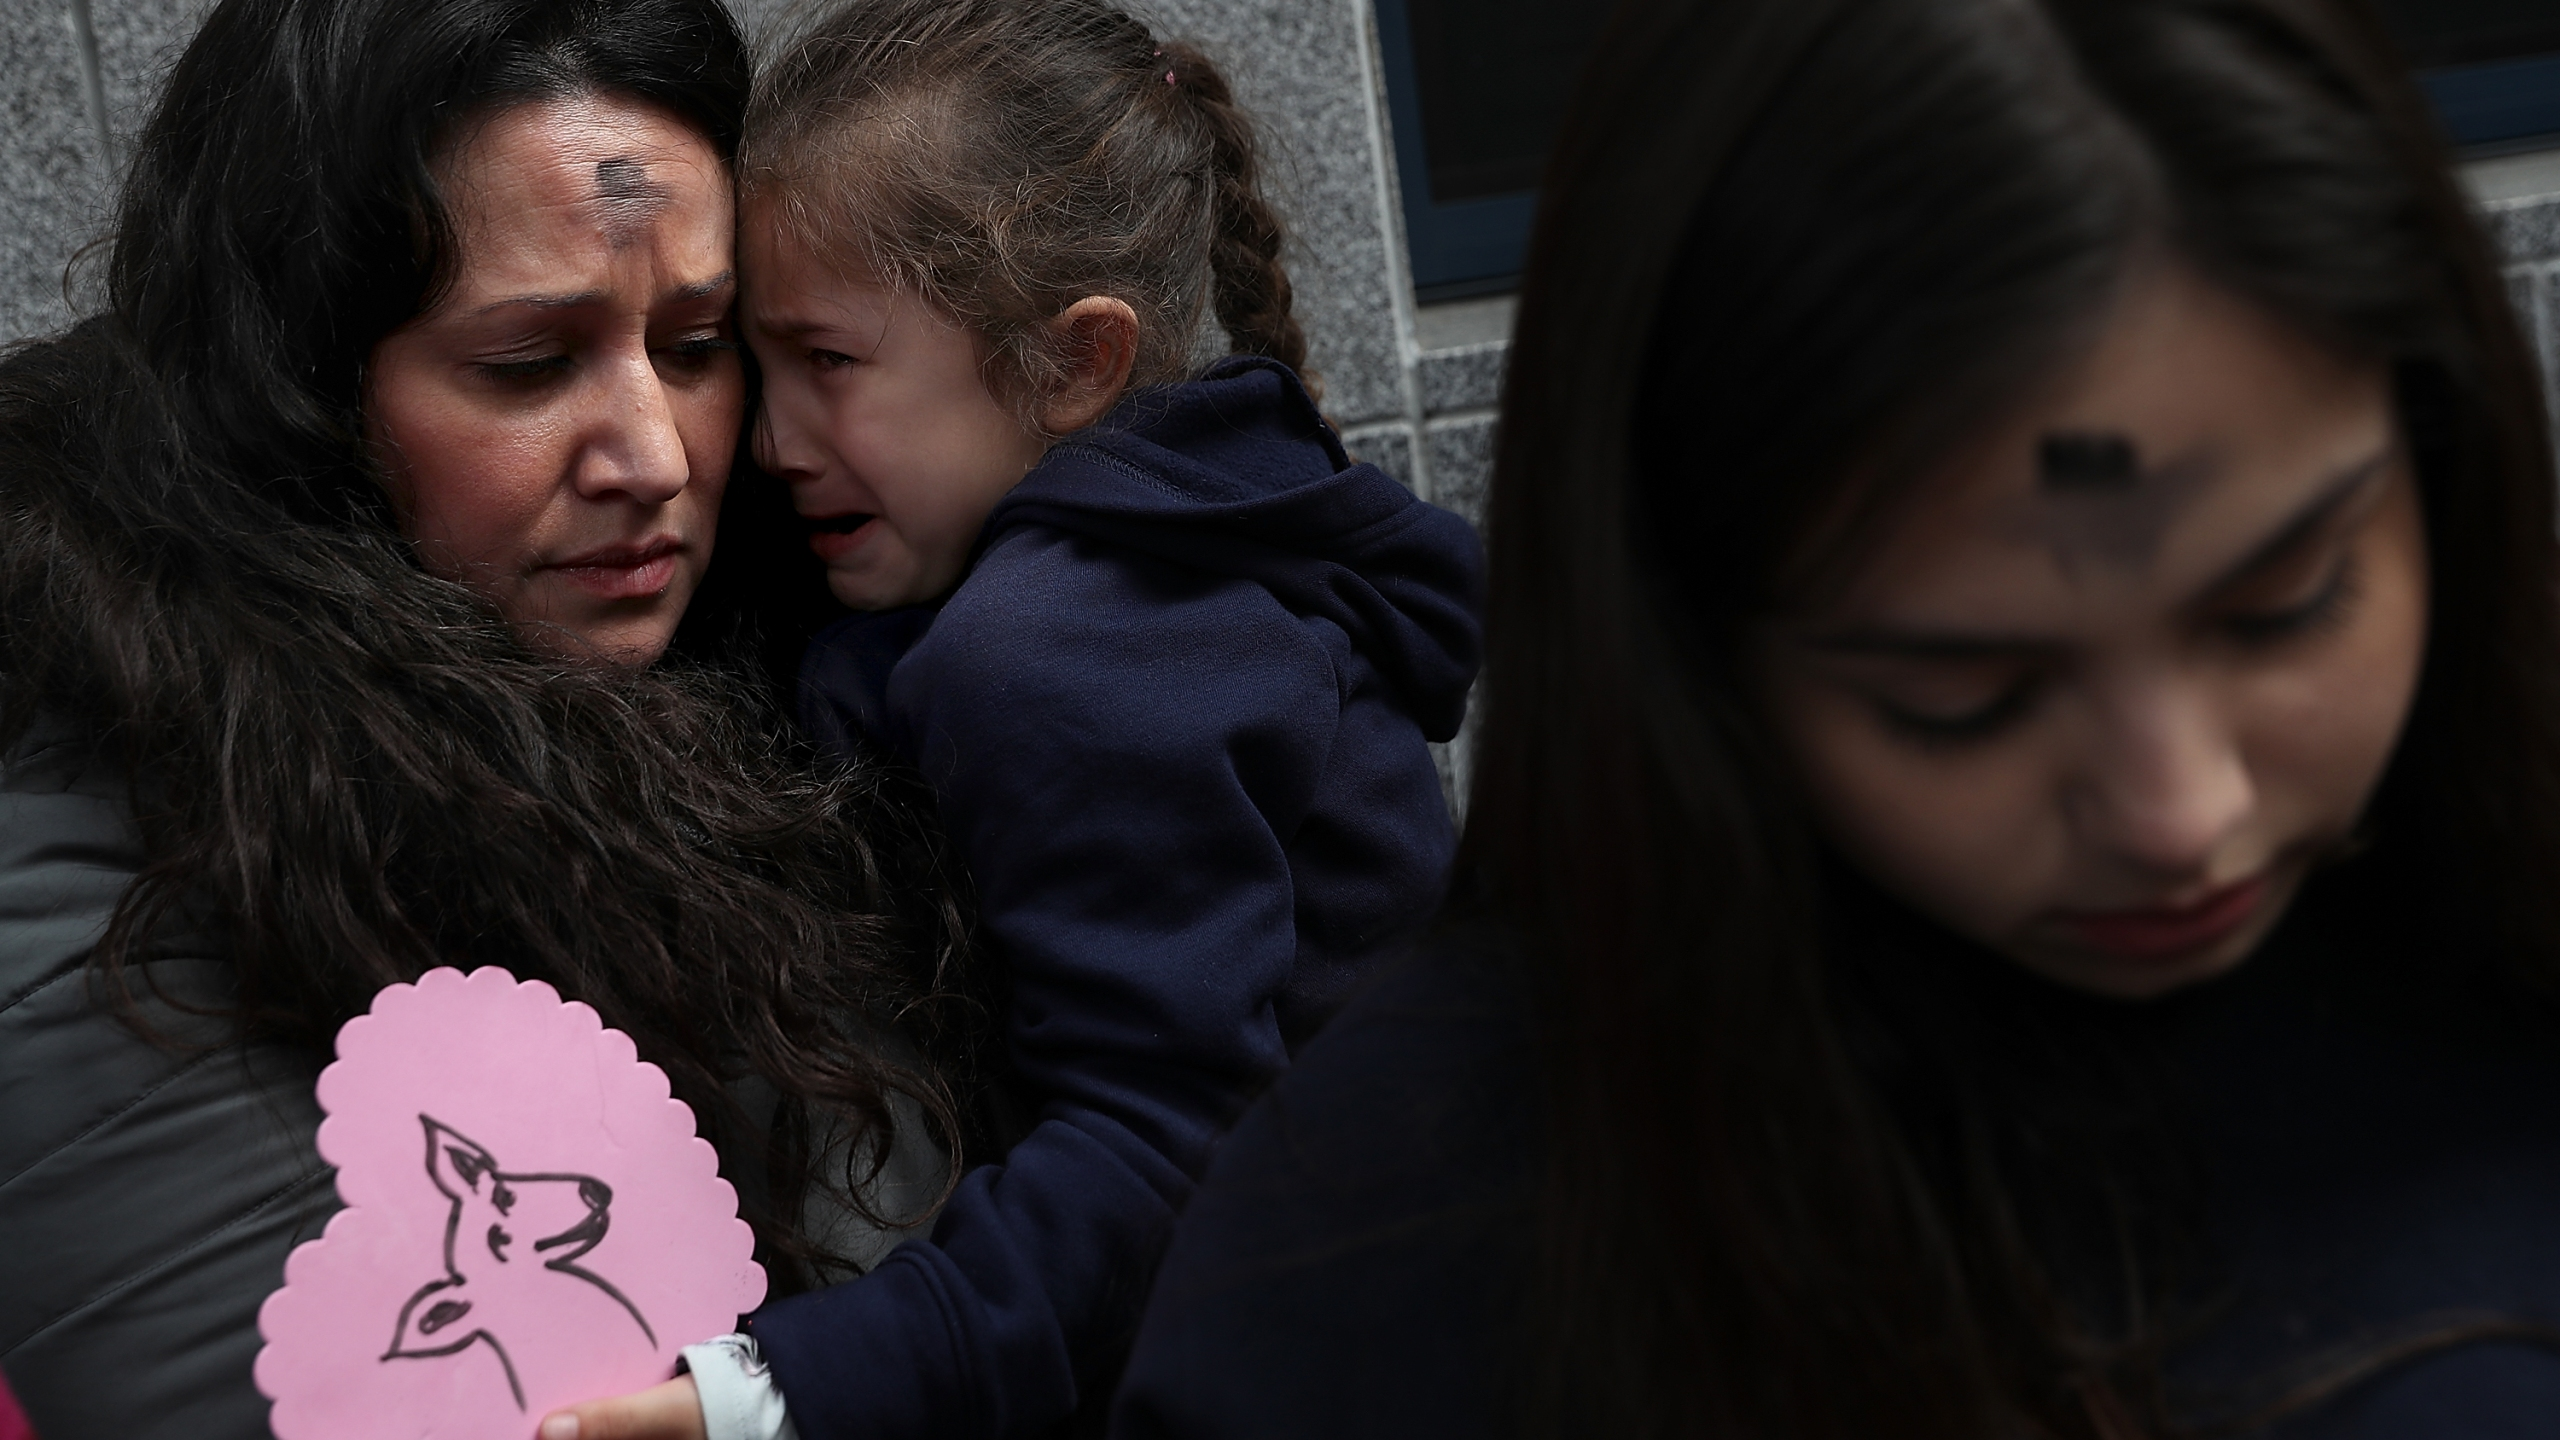 Lourdes Barraza, wife of detained immigrant Fernando Barraza, holds her crying daughter Ana Barraza during a Valentine's Day demonstration outside of the San Francisco office of the Immigration and Cutsoms Enforcement on Feb. 14, 2018 in San Francisco. (Credit: Justin Sullivan/Getty Images)